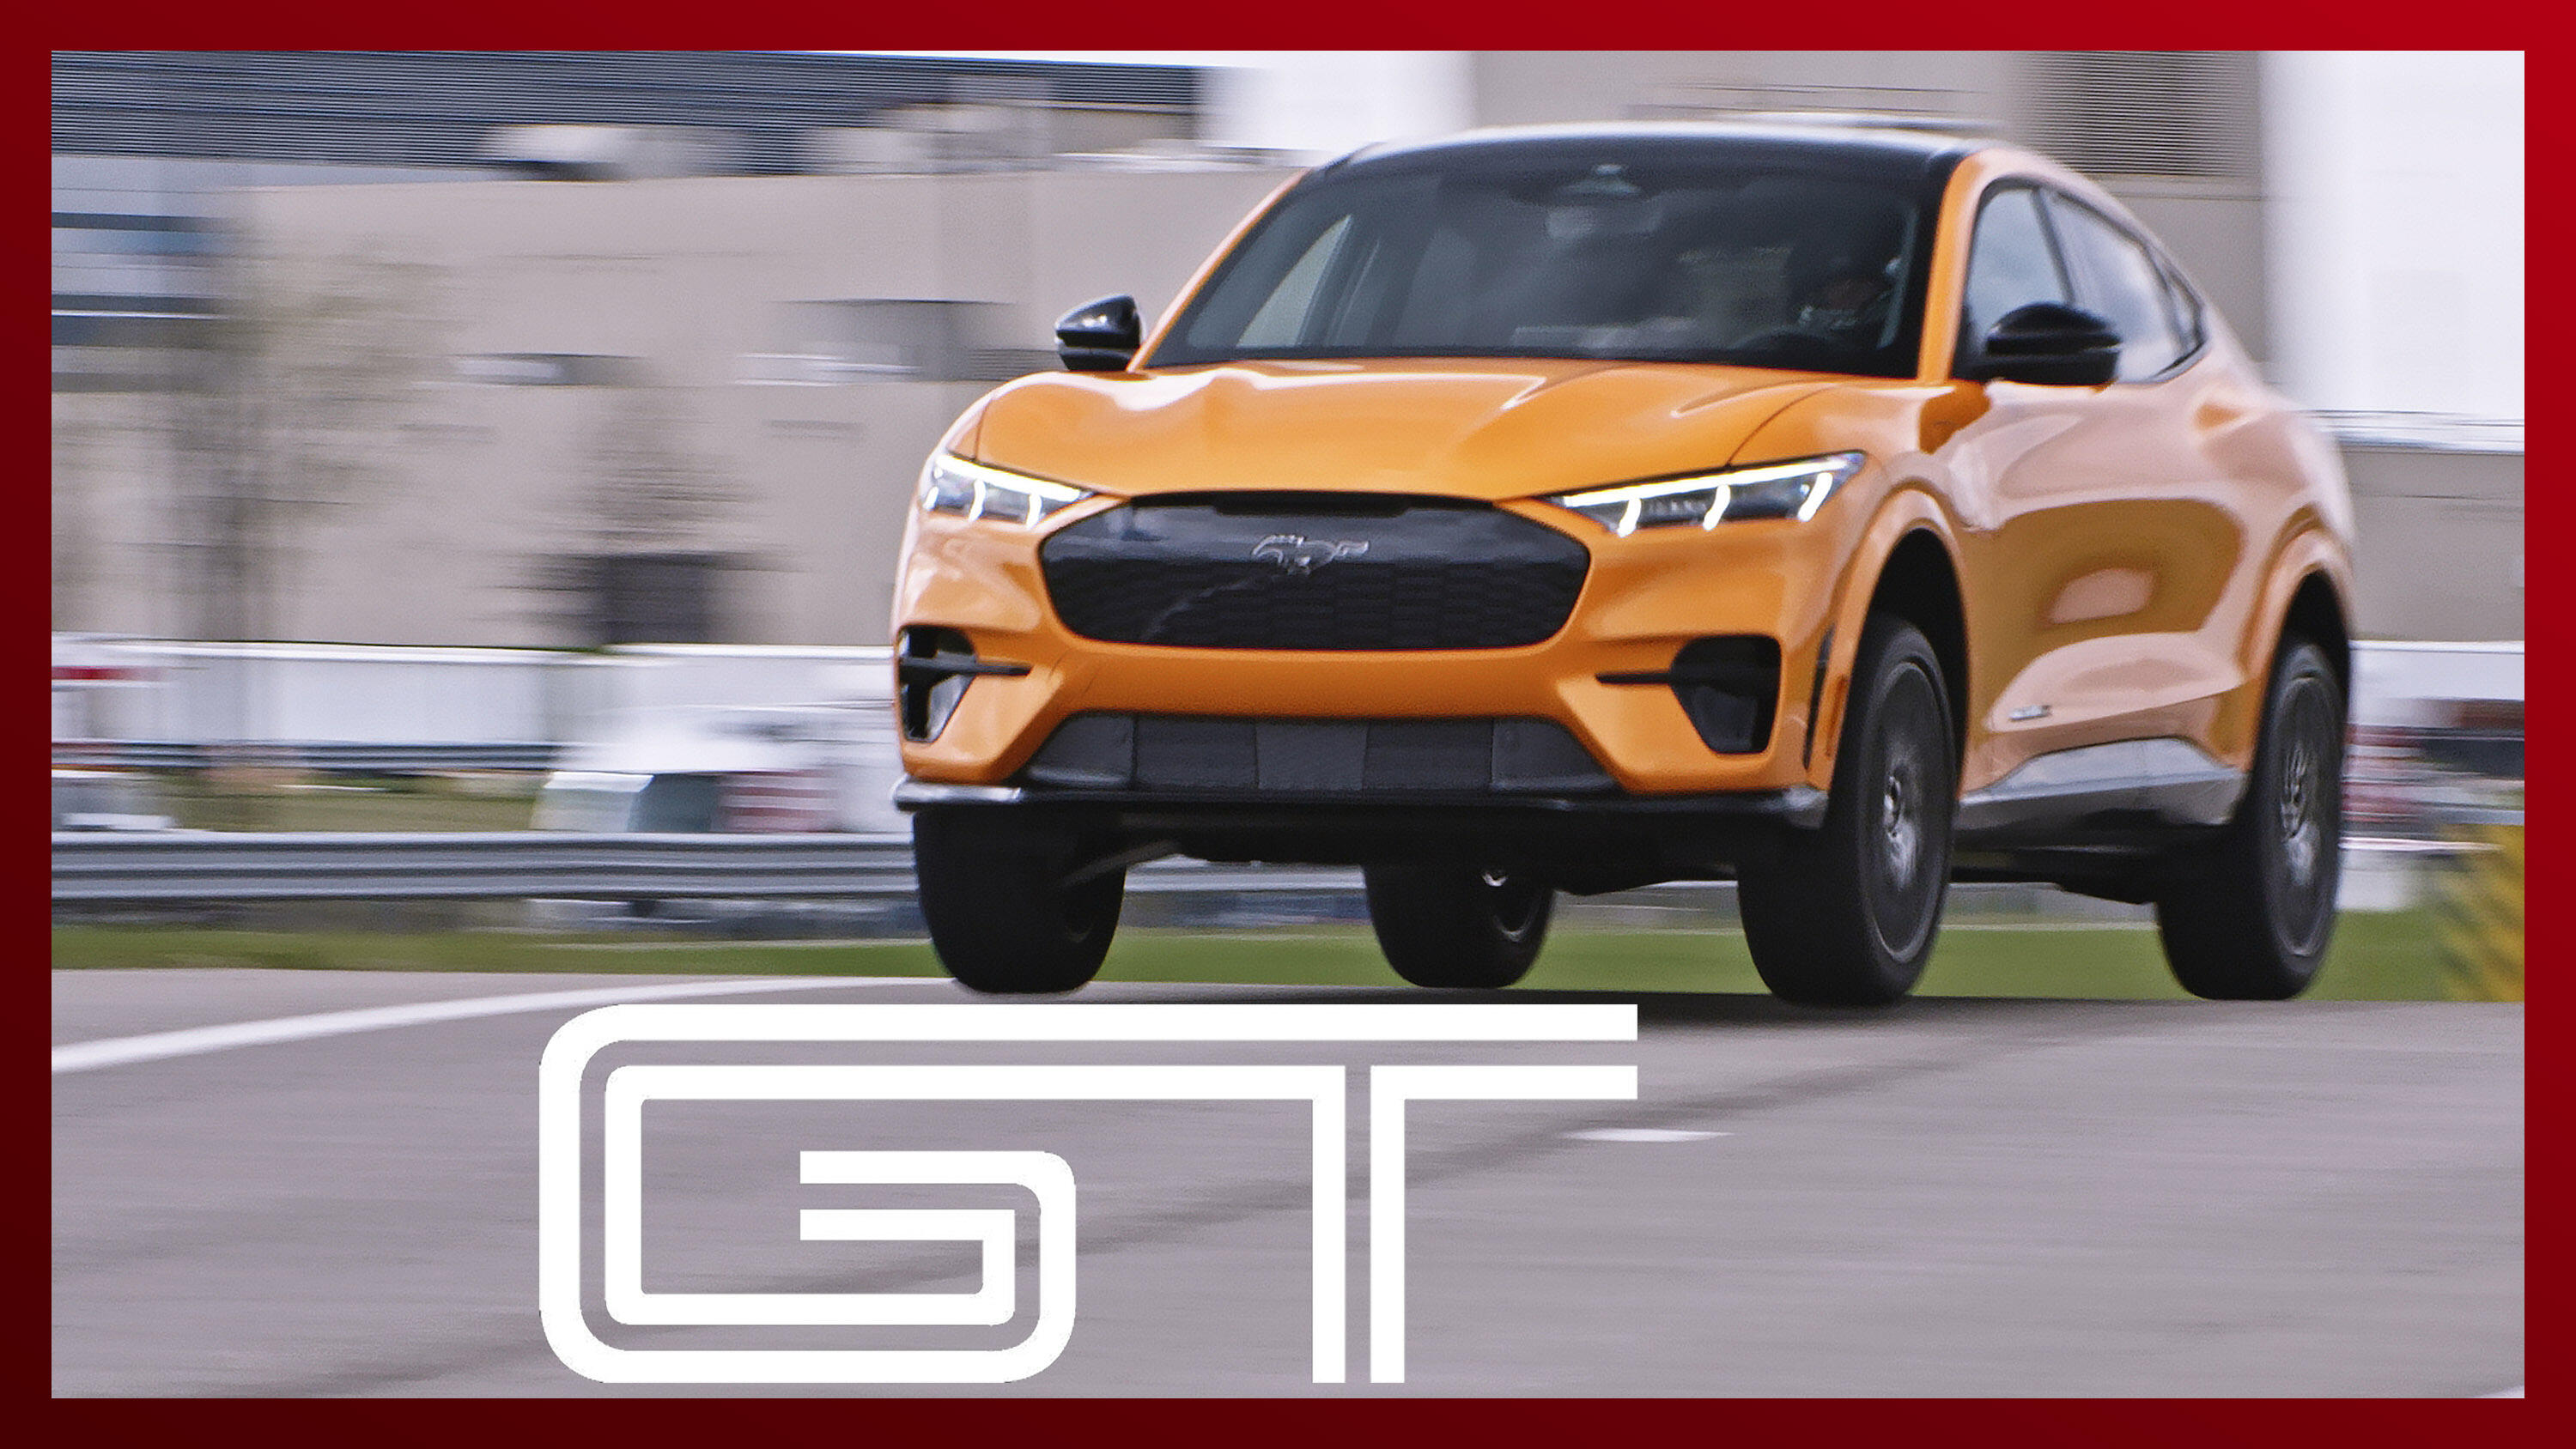 Video: 2021 Ford Mustang Mach-E GT - exclusive ridealong